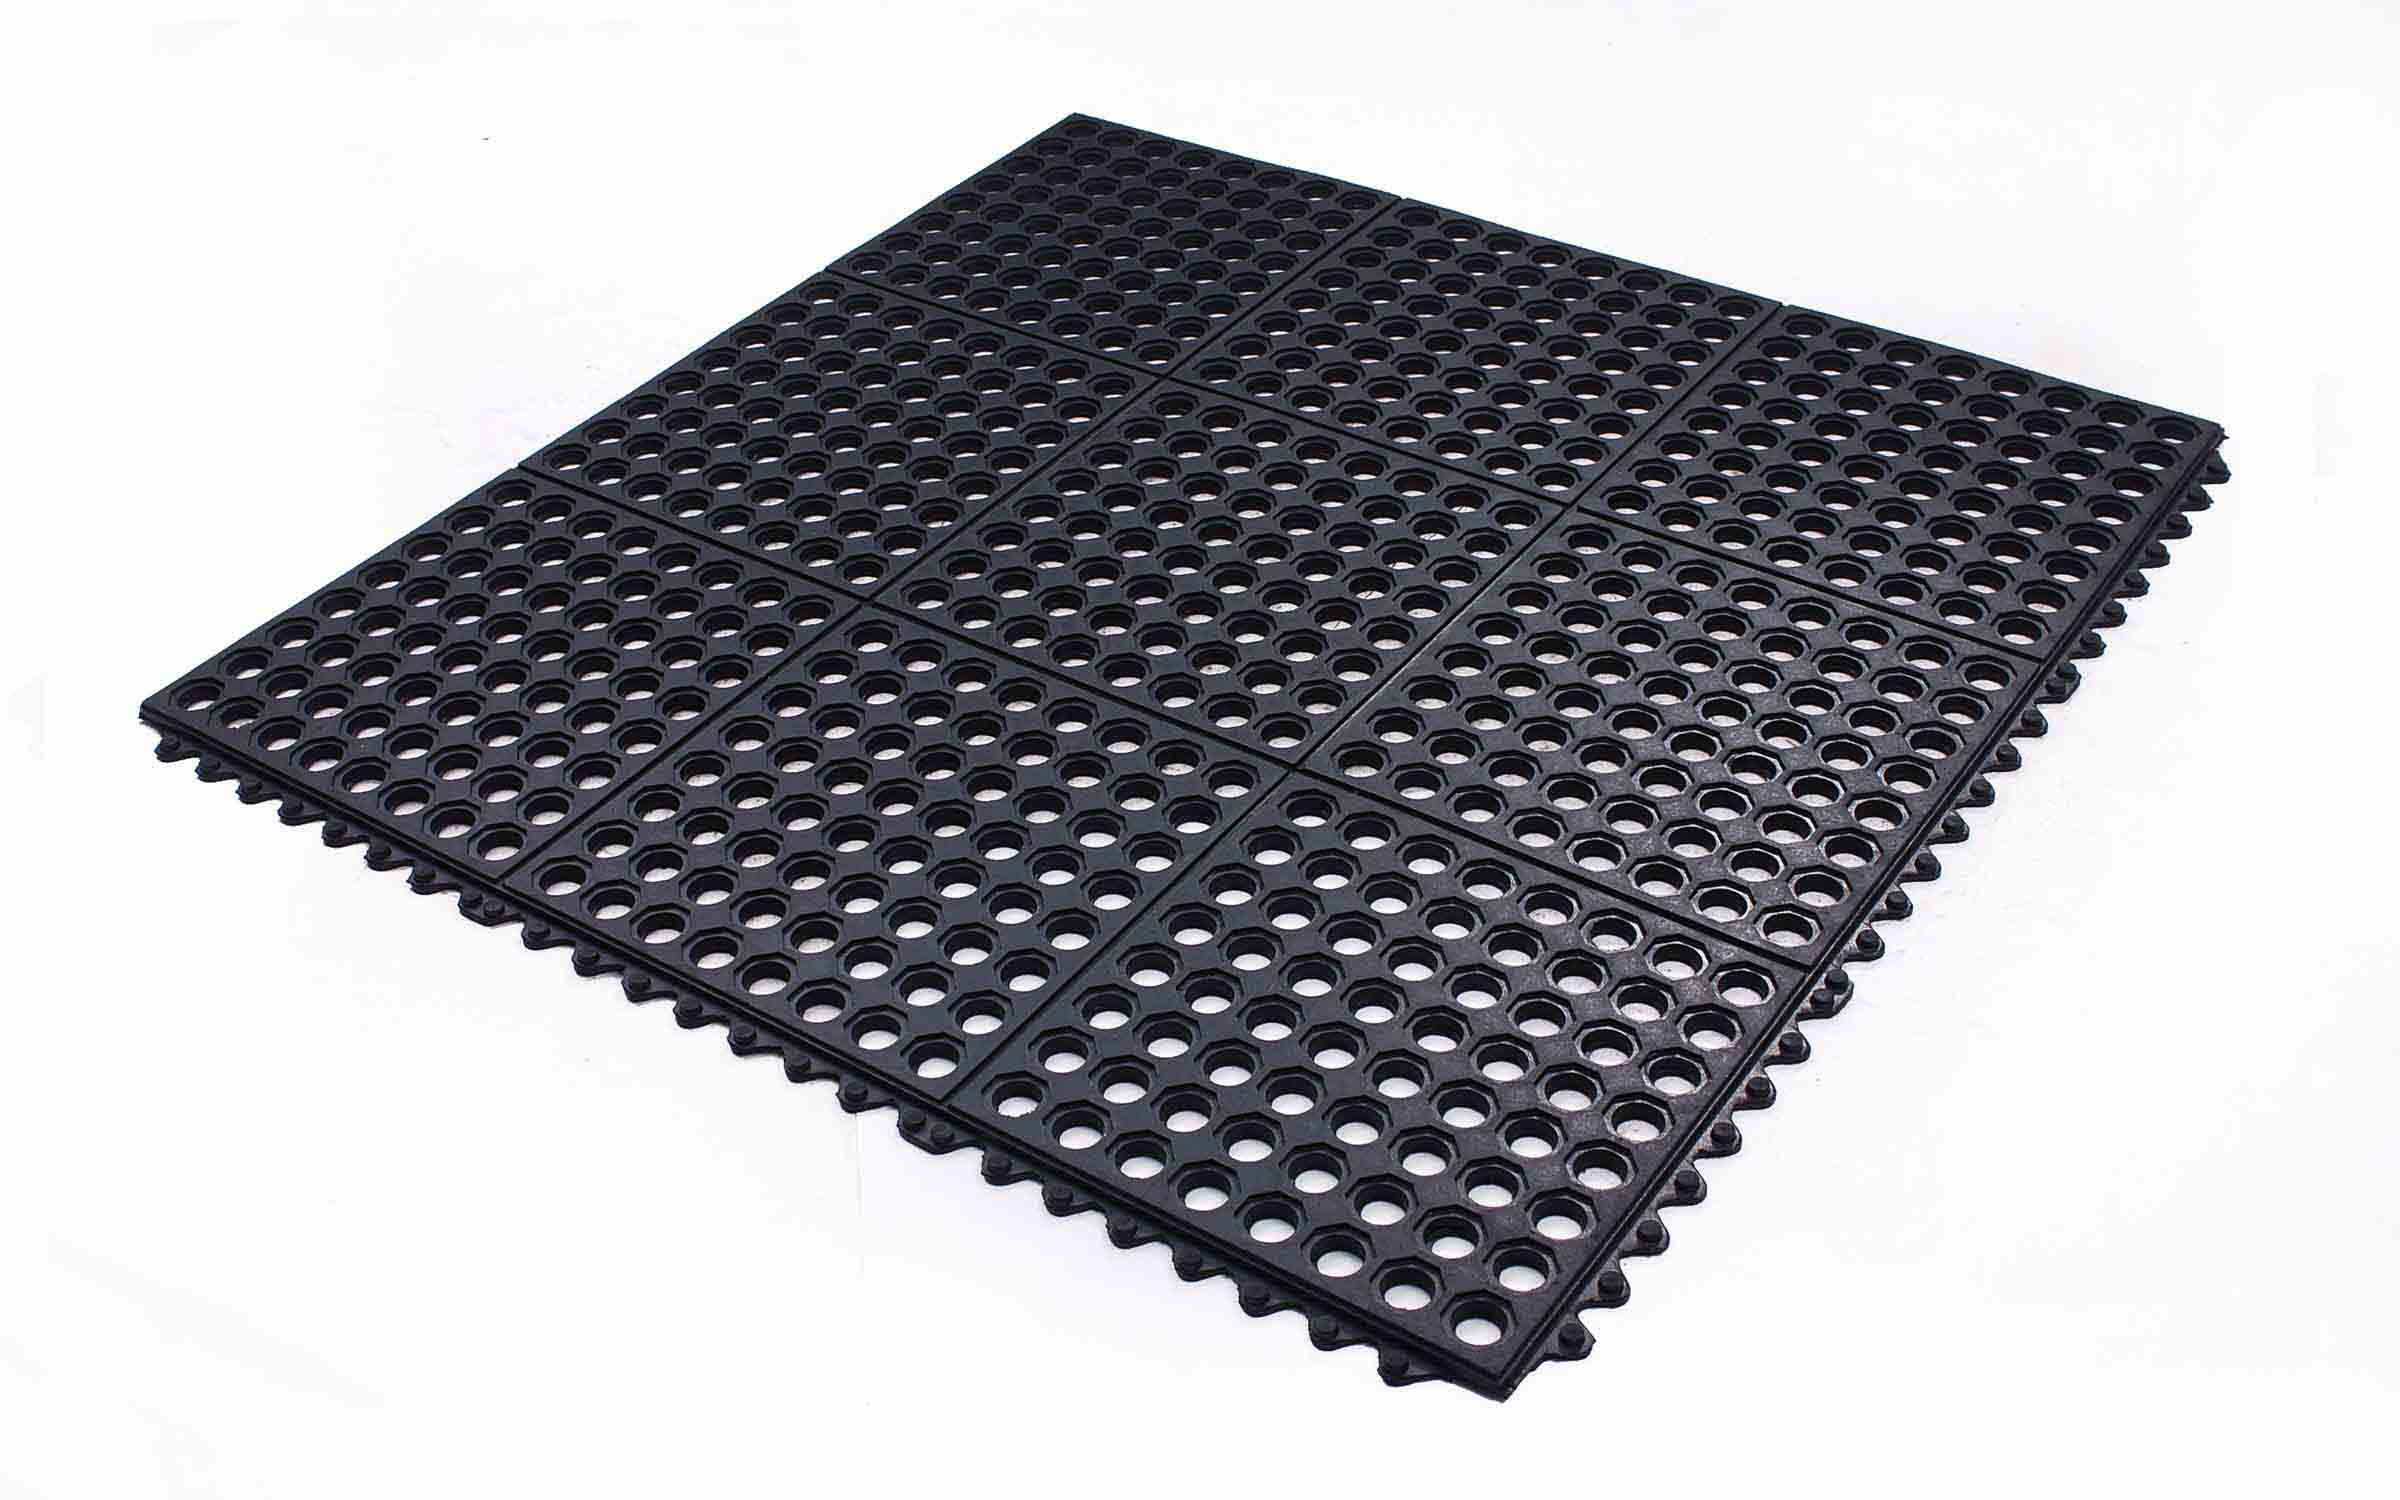 Restaurant Kitchen Rubber Mats rubber mats for kitchen floor ~ picgit